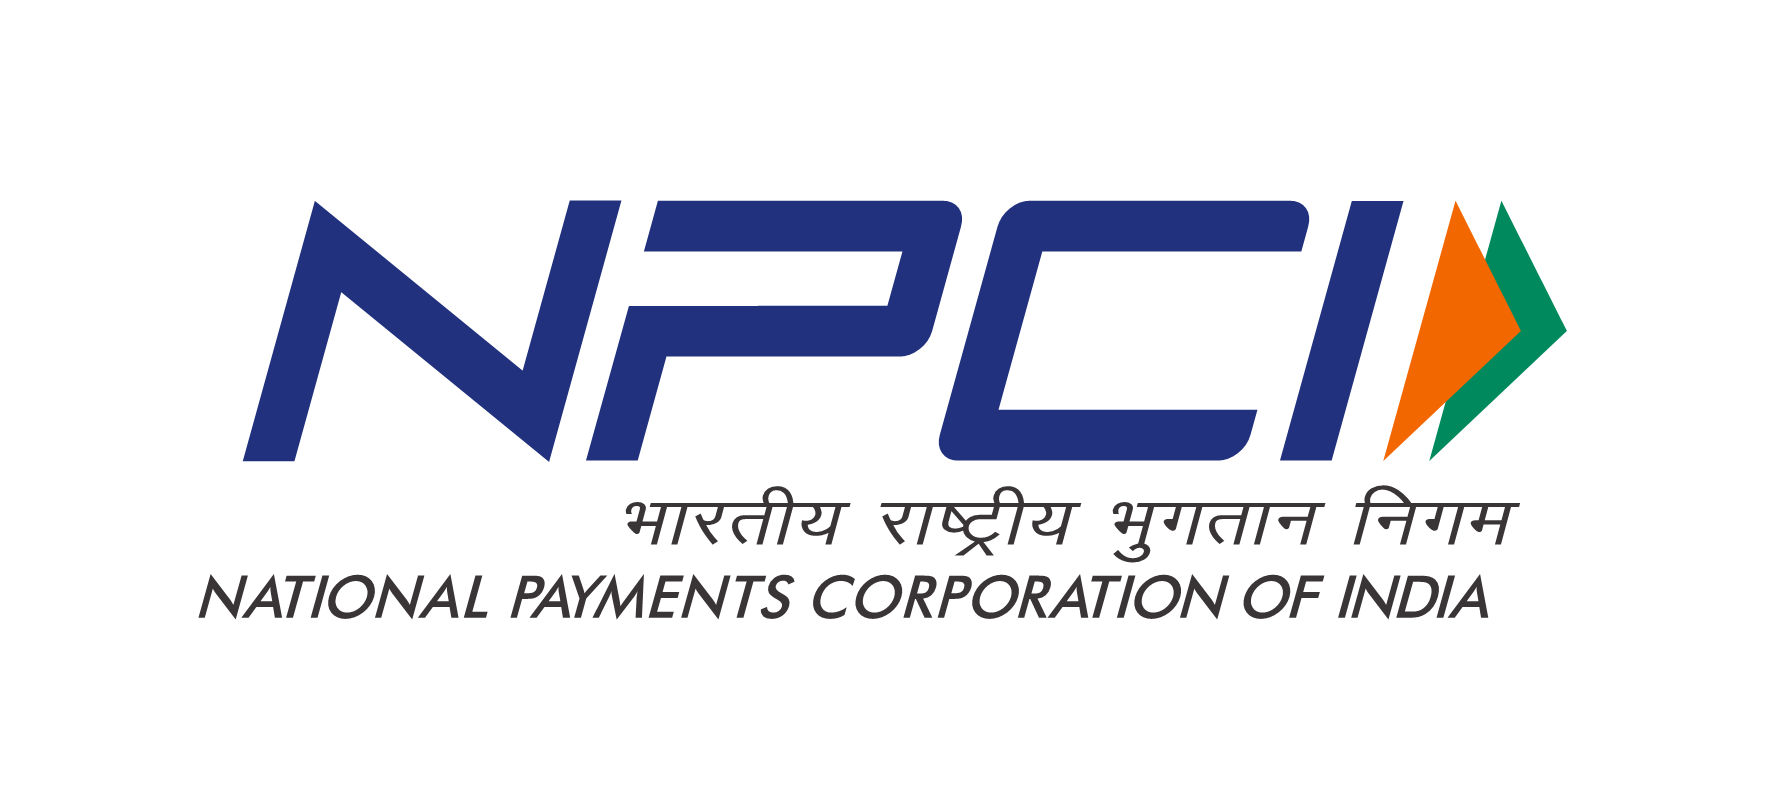 National Payments Corporation of India - Wikipedia